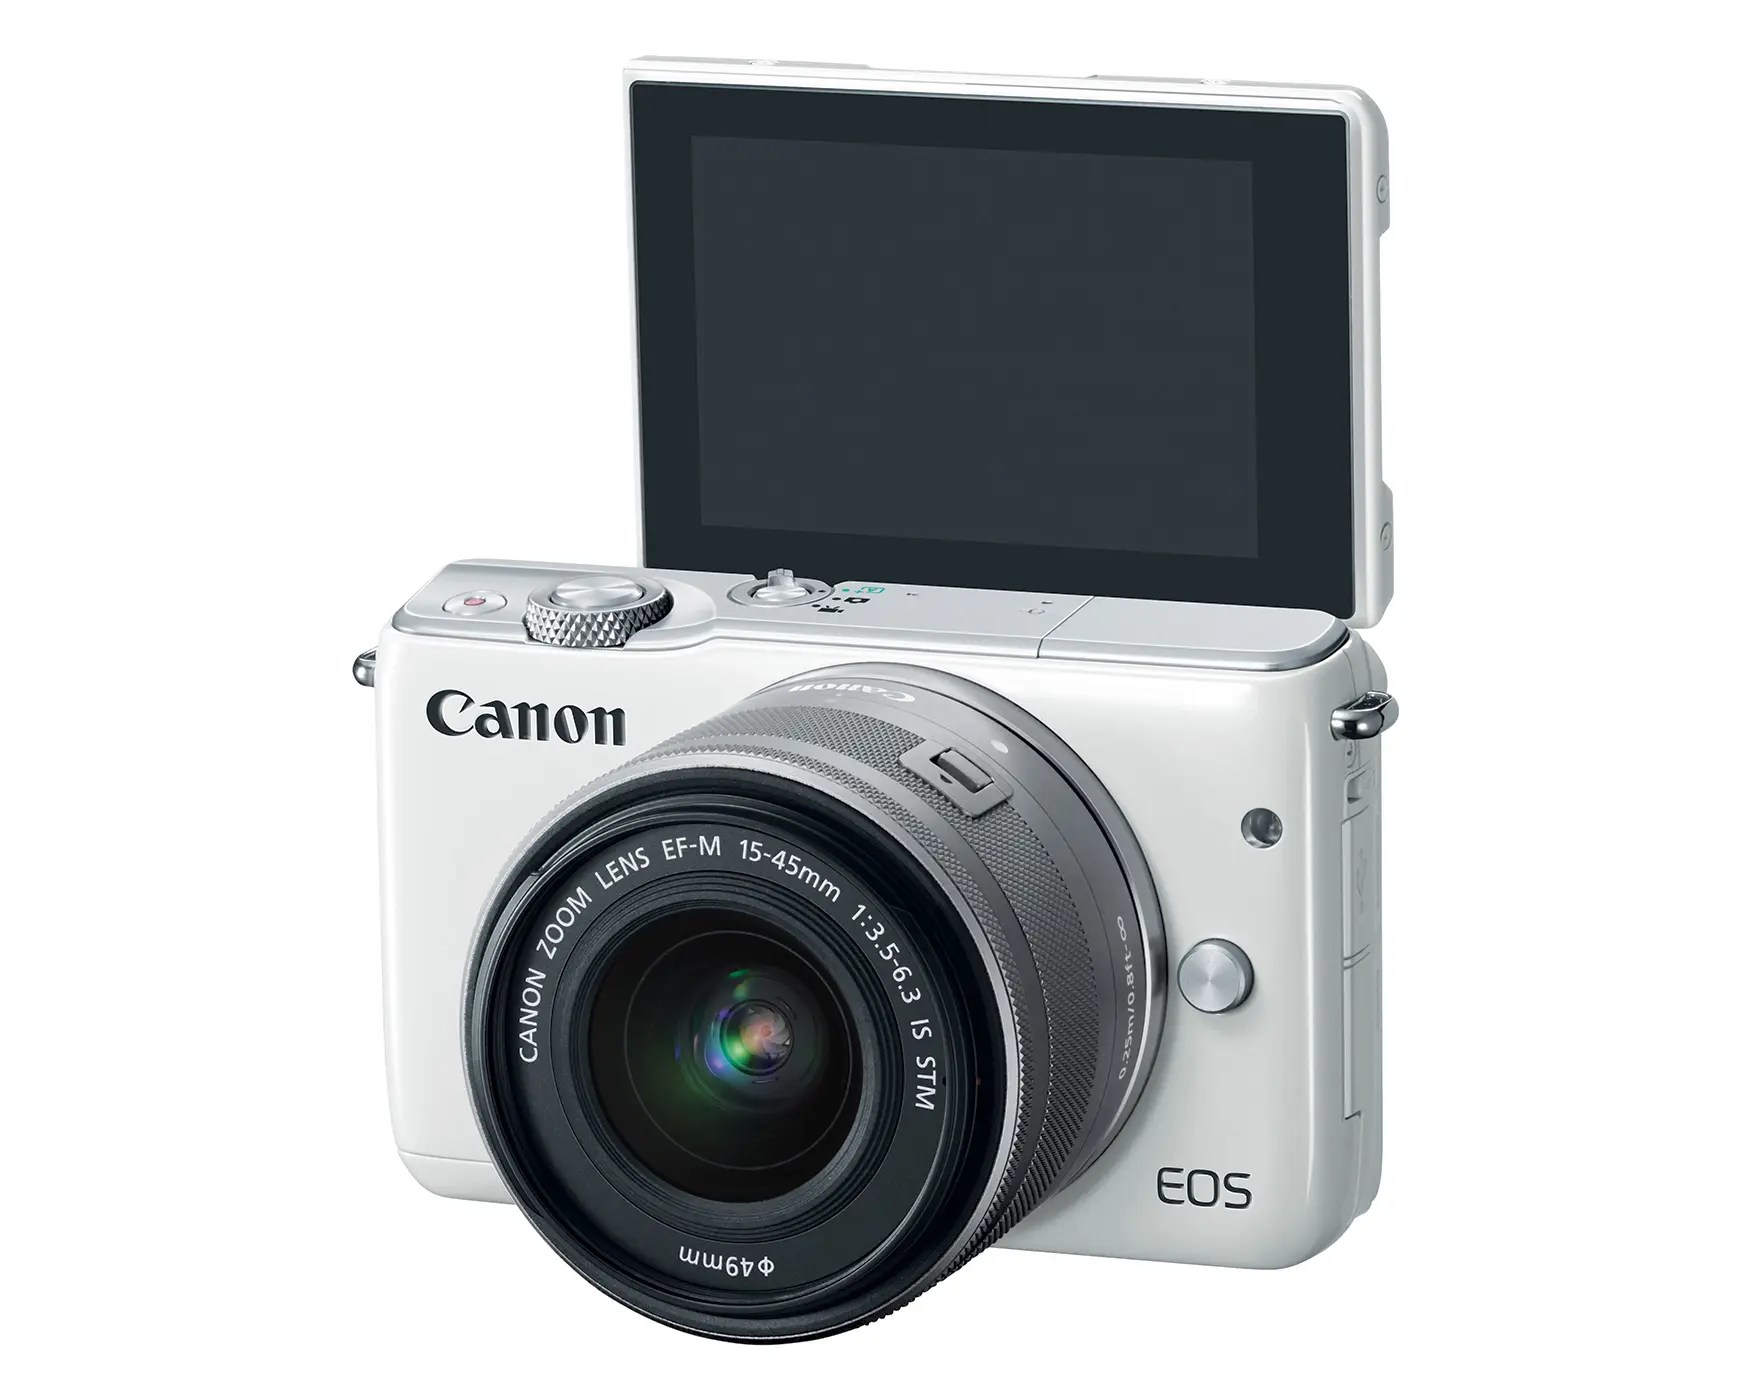 Canon Officially Announces Their New Eos M10 - M10